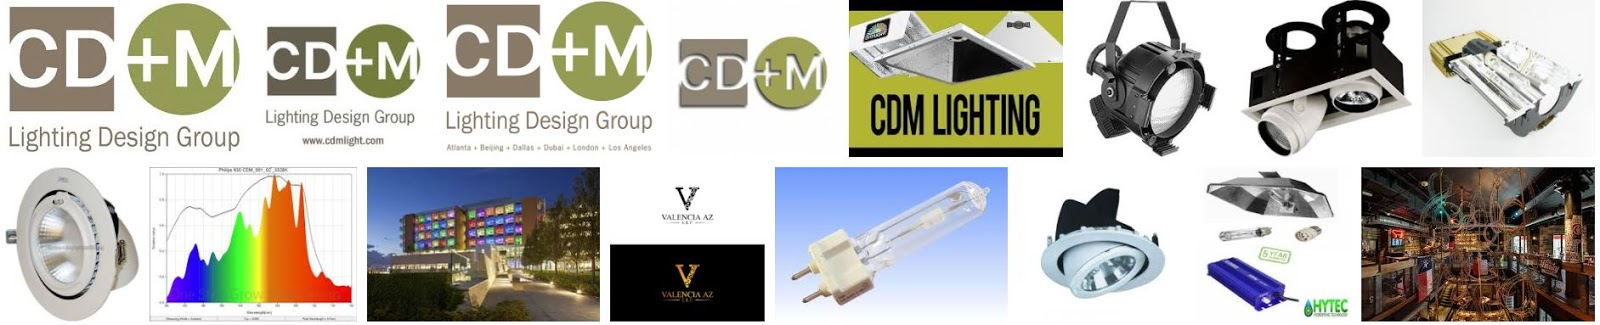 Established In 1986, CD+M Lighting Design Group Is An International Lighting  And Systems Design Firm Dedicated To Creating Innovative, Sustainable And  ...